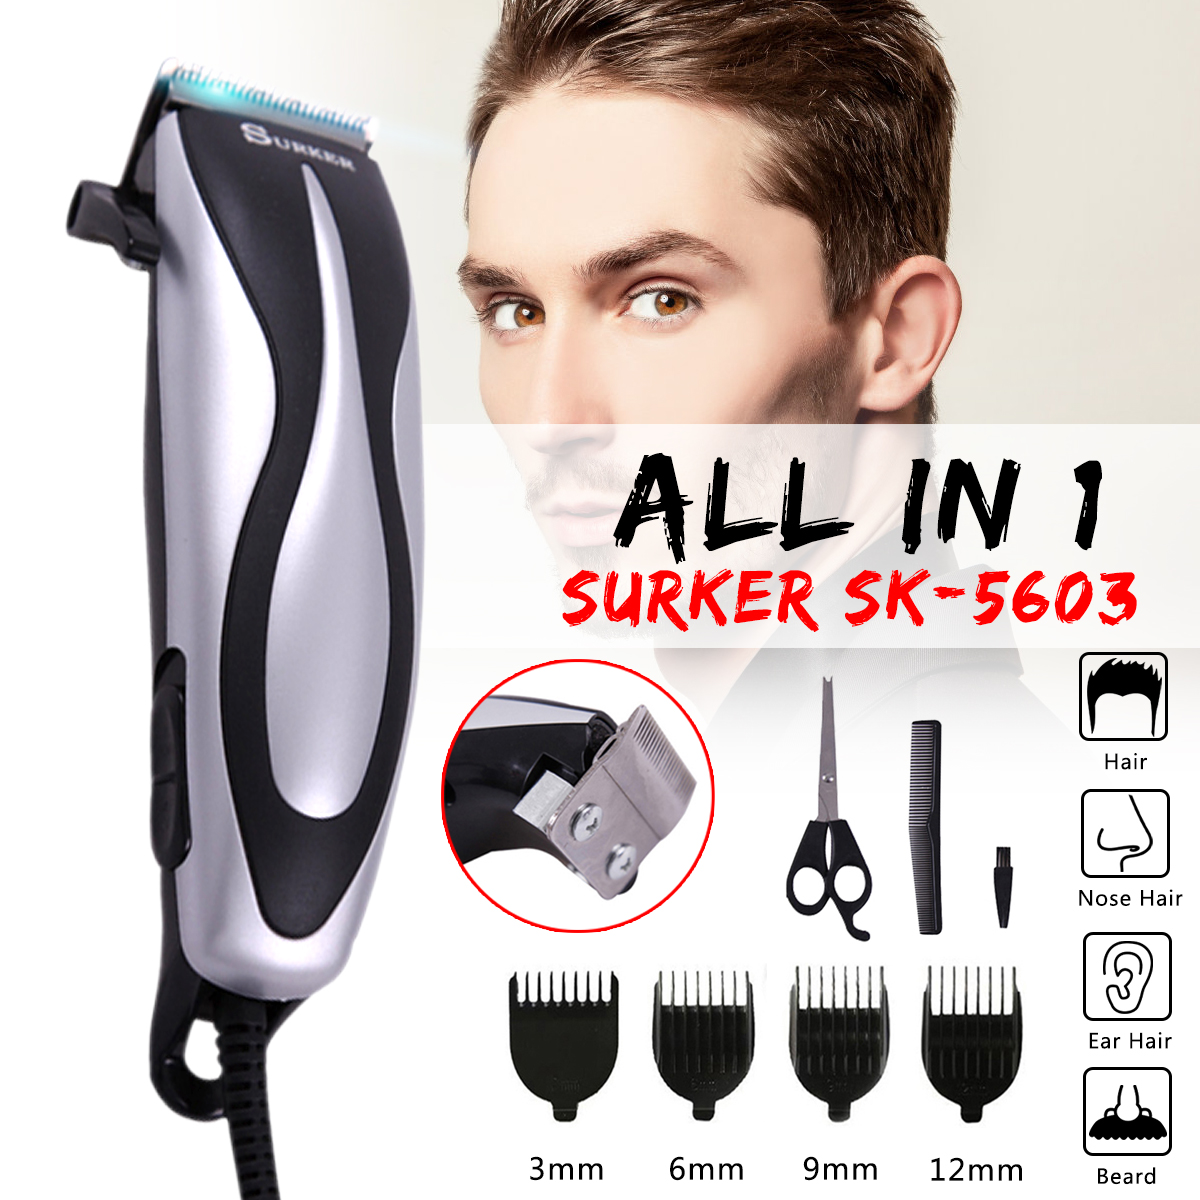 SURKER SK-5603 Electric Wire Hair Trimmer Professional Family Barber Haircut Machine Hair Clipper with Haircut Comb EU Plug new surker hc 575 rechargeable silent electric trimmer hair trimmer led display electric fader haircut machine with eu plug